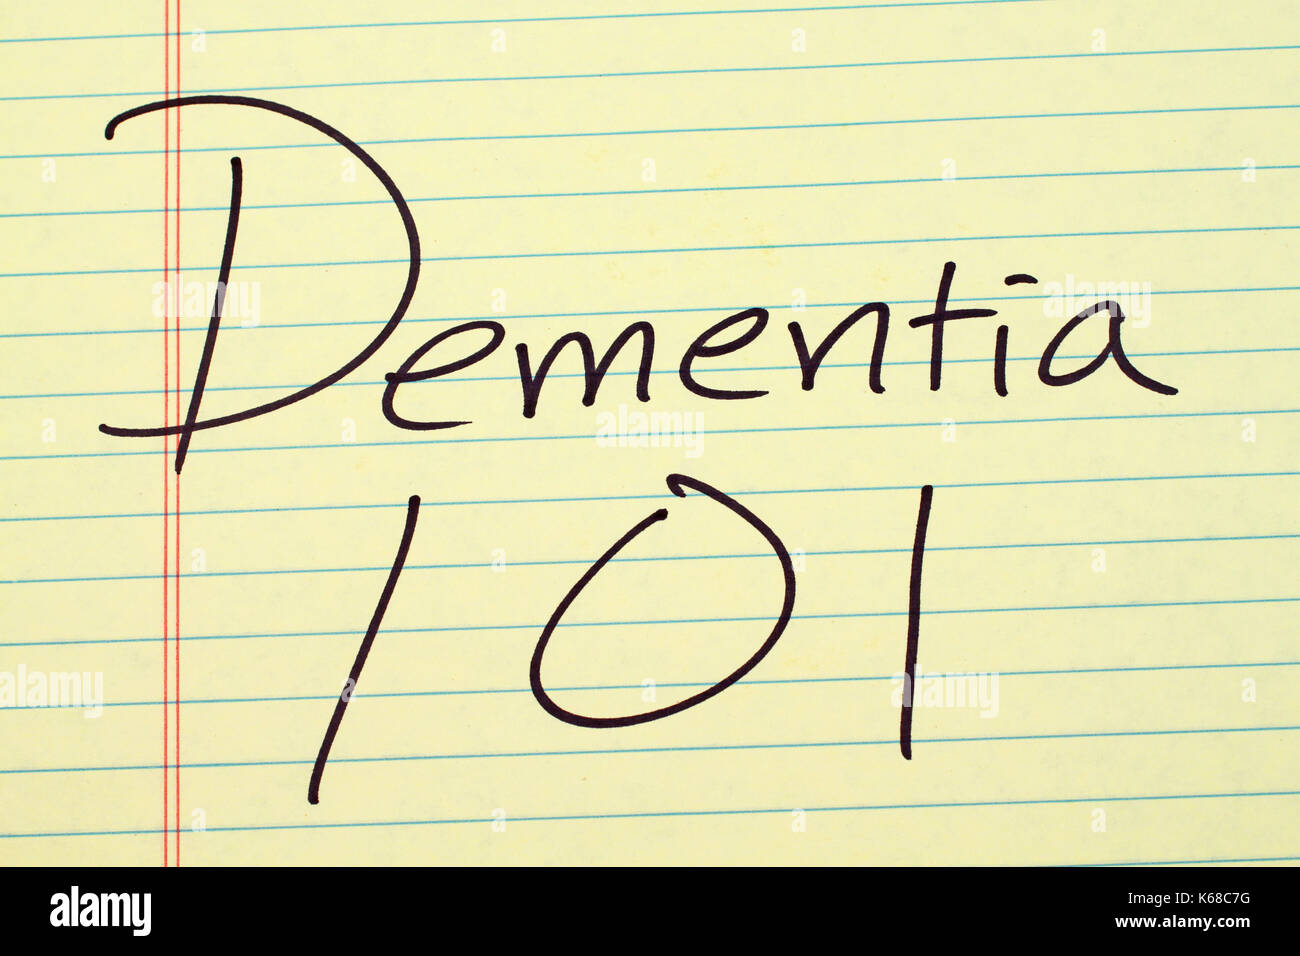 The words 'Dementia 101' on a yellow legal pad - Stock Image